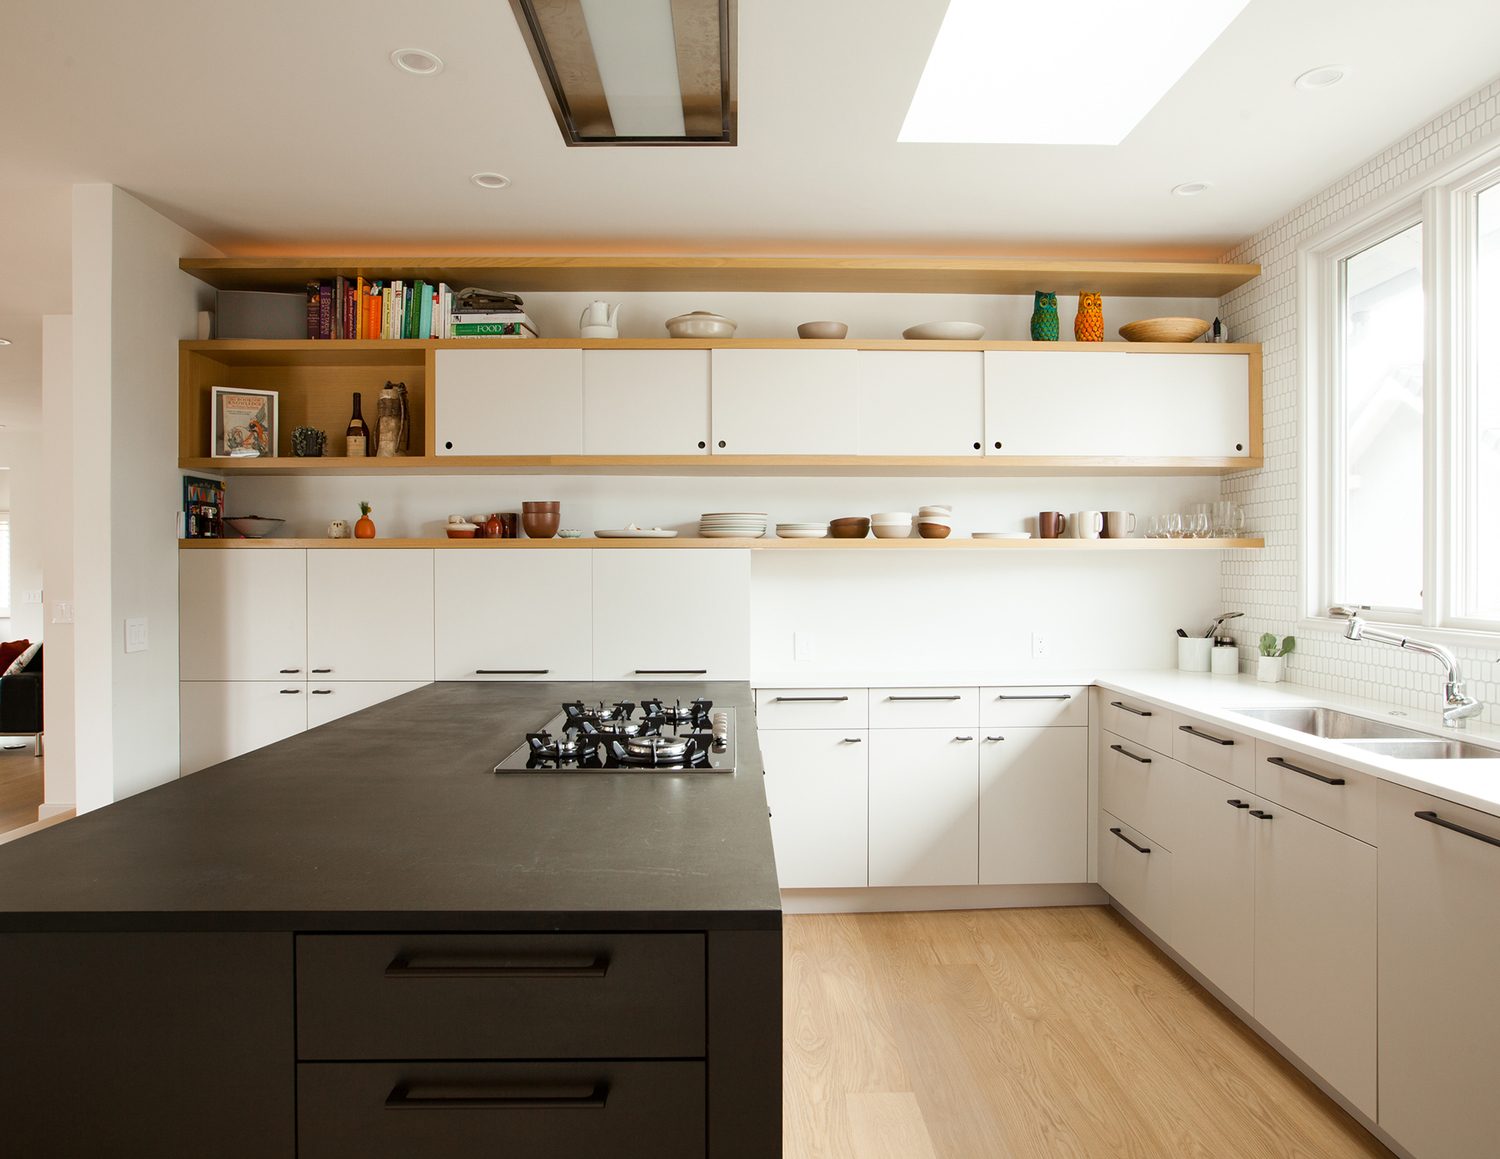 rockridge_kitchen-bar.jpg